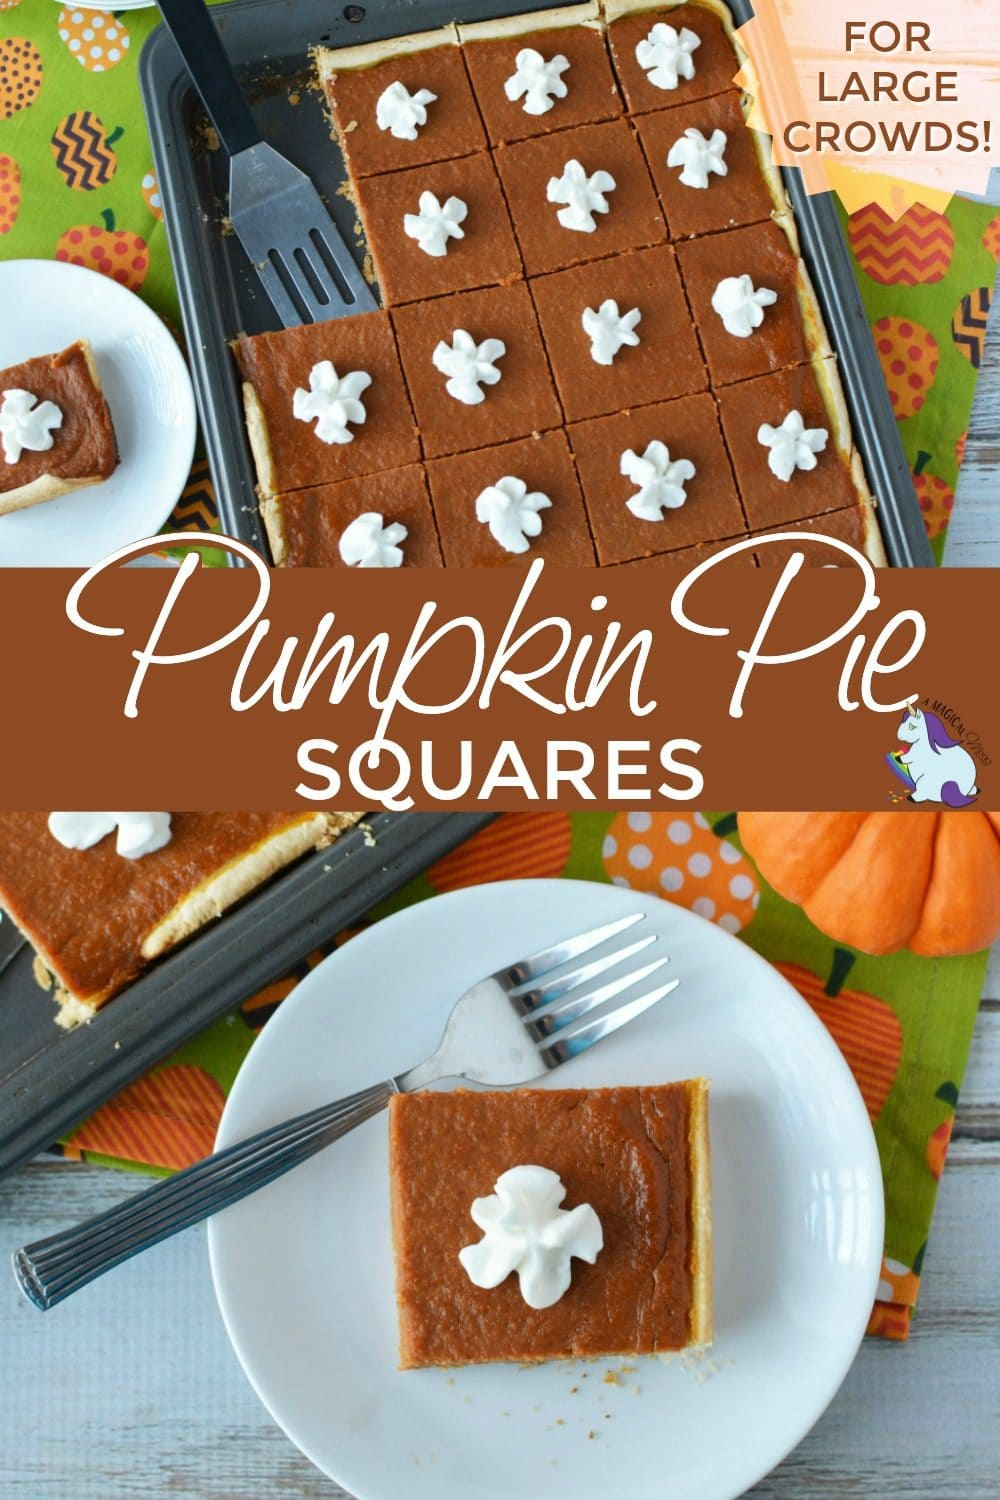 Pumpkin slab slices on a baking sheet and on a plate.